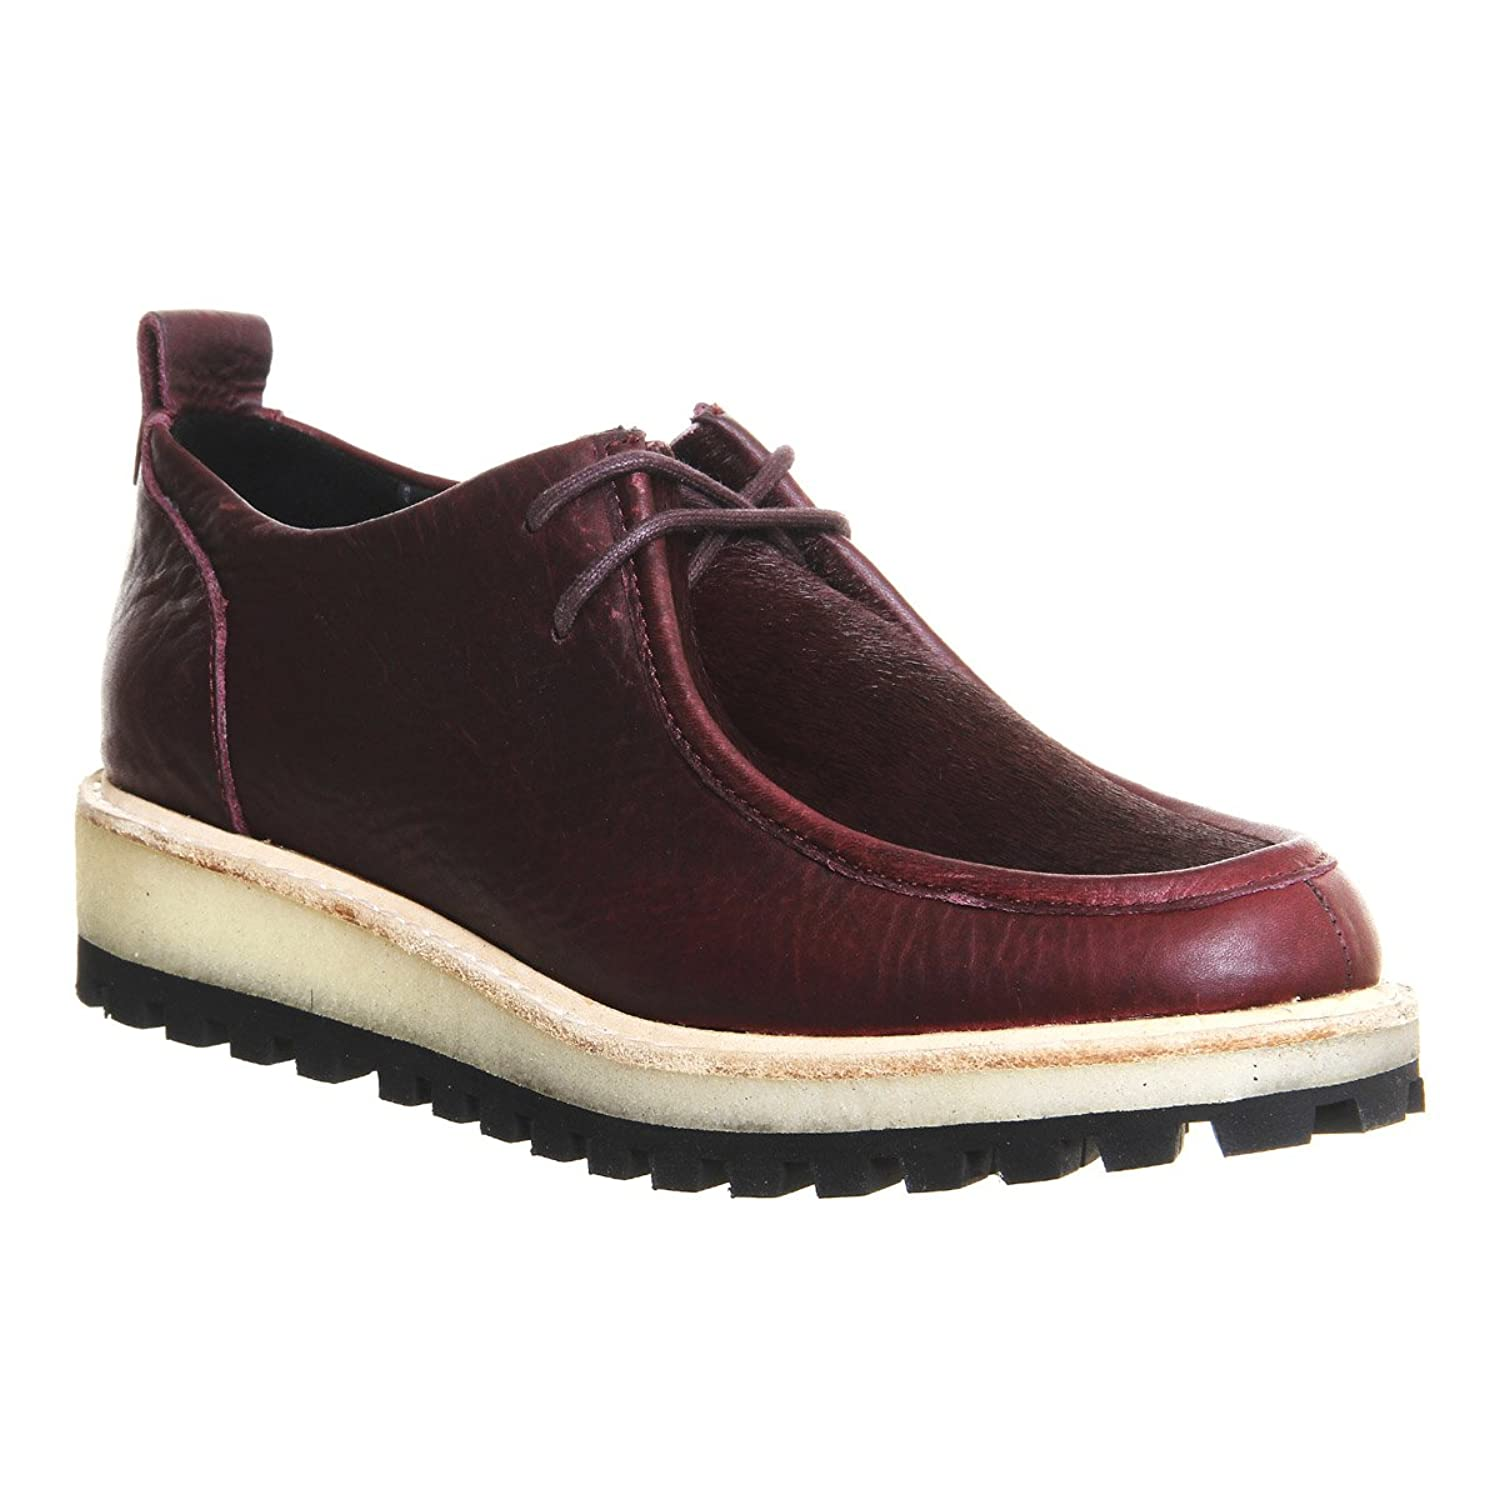 Clarks Women's Wallamoc Trek Wine Leather Oxford Shoes